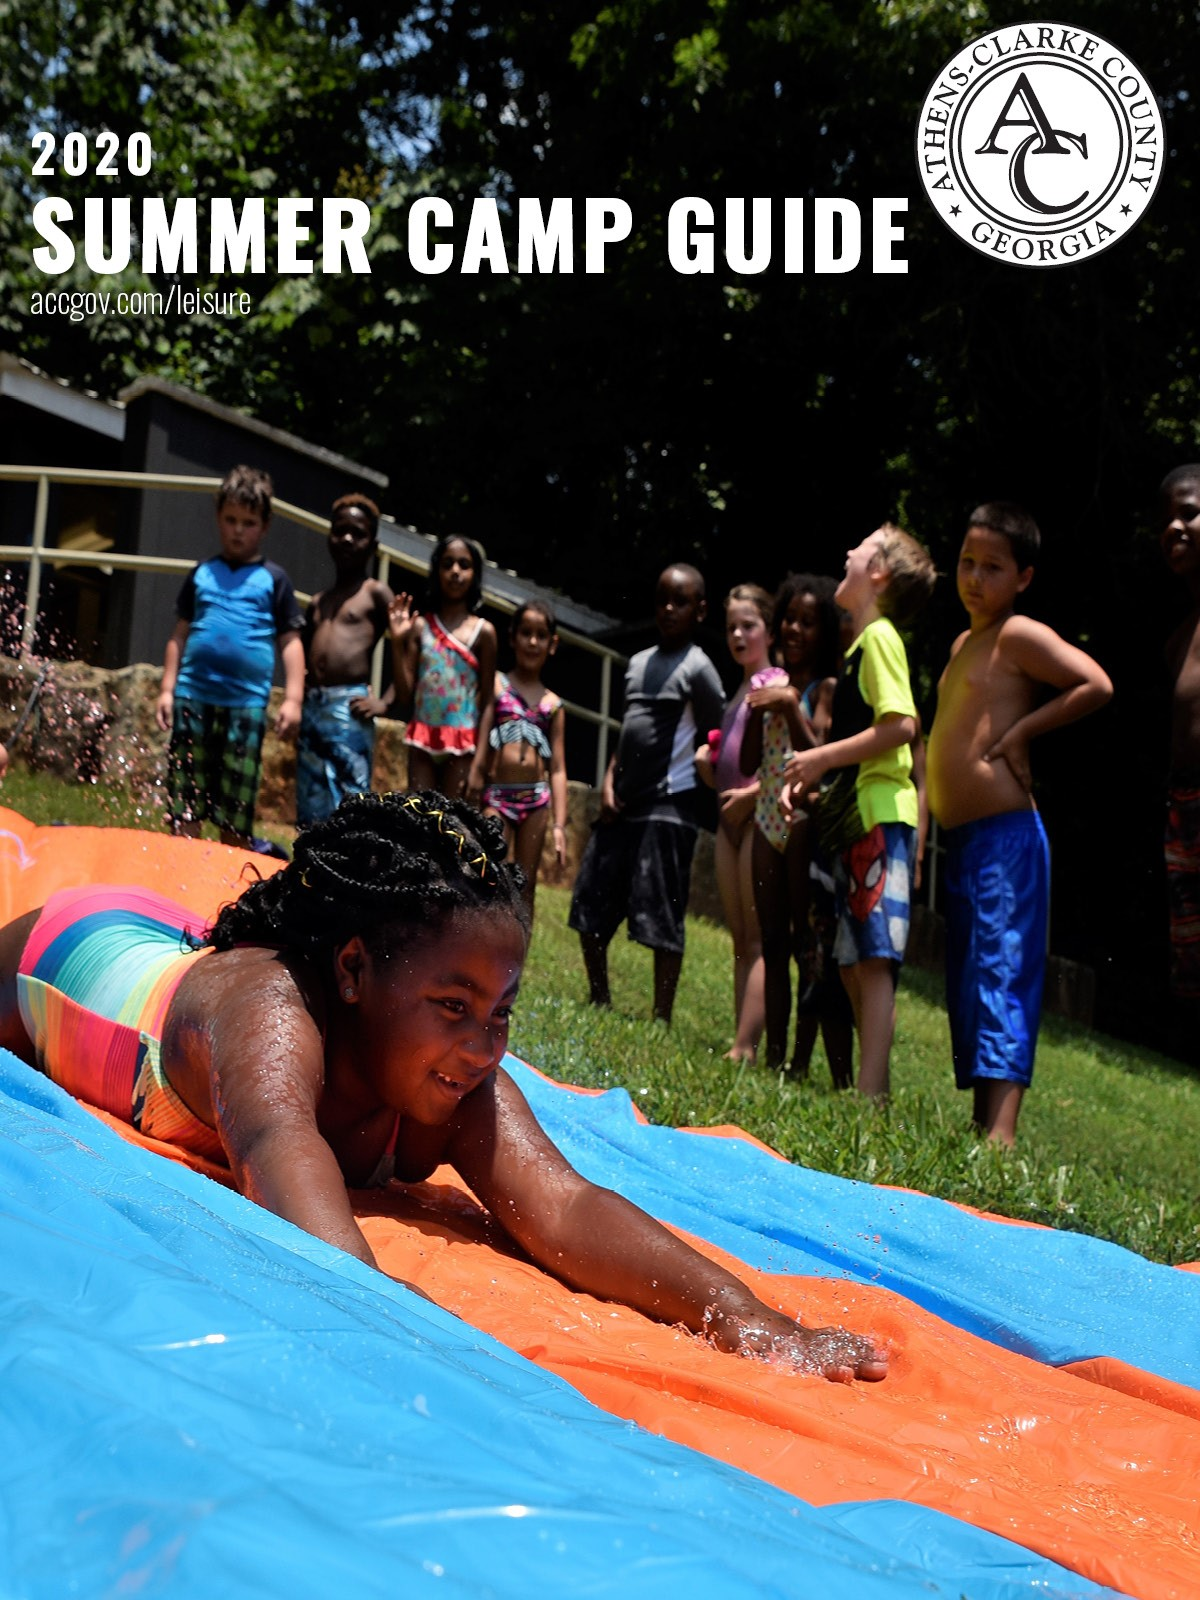 Summer Camp Program Guide 2020 Opens in new window